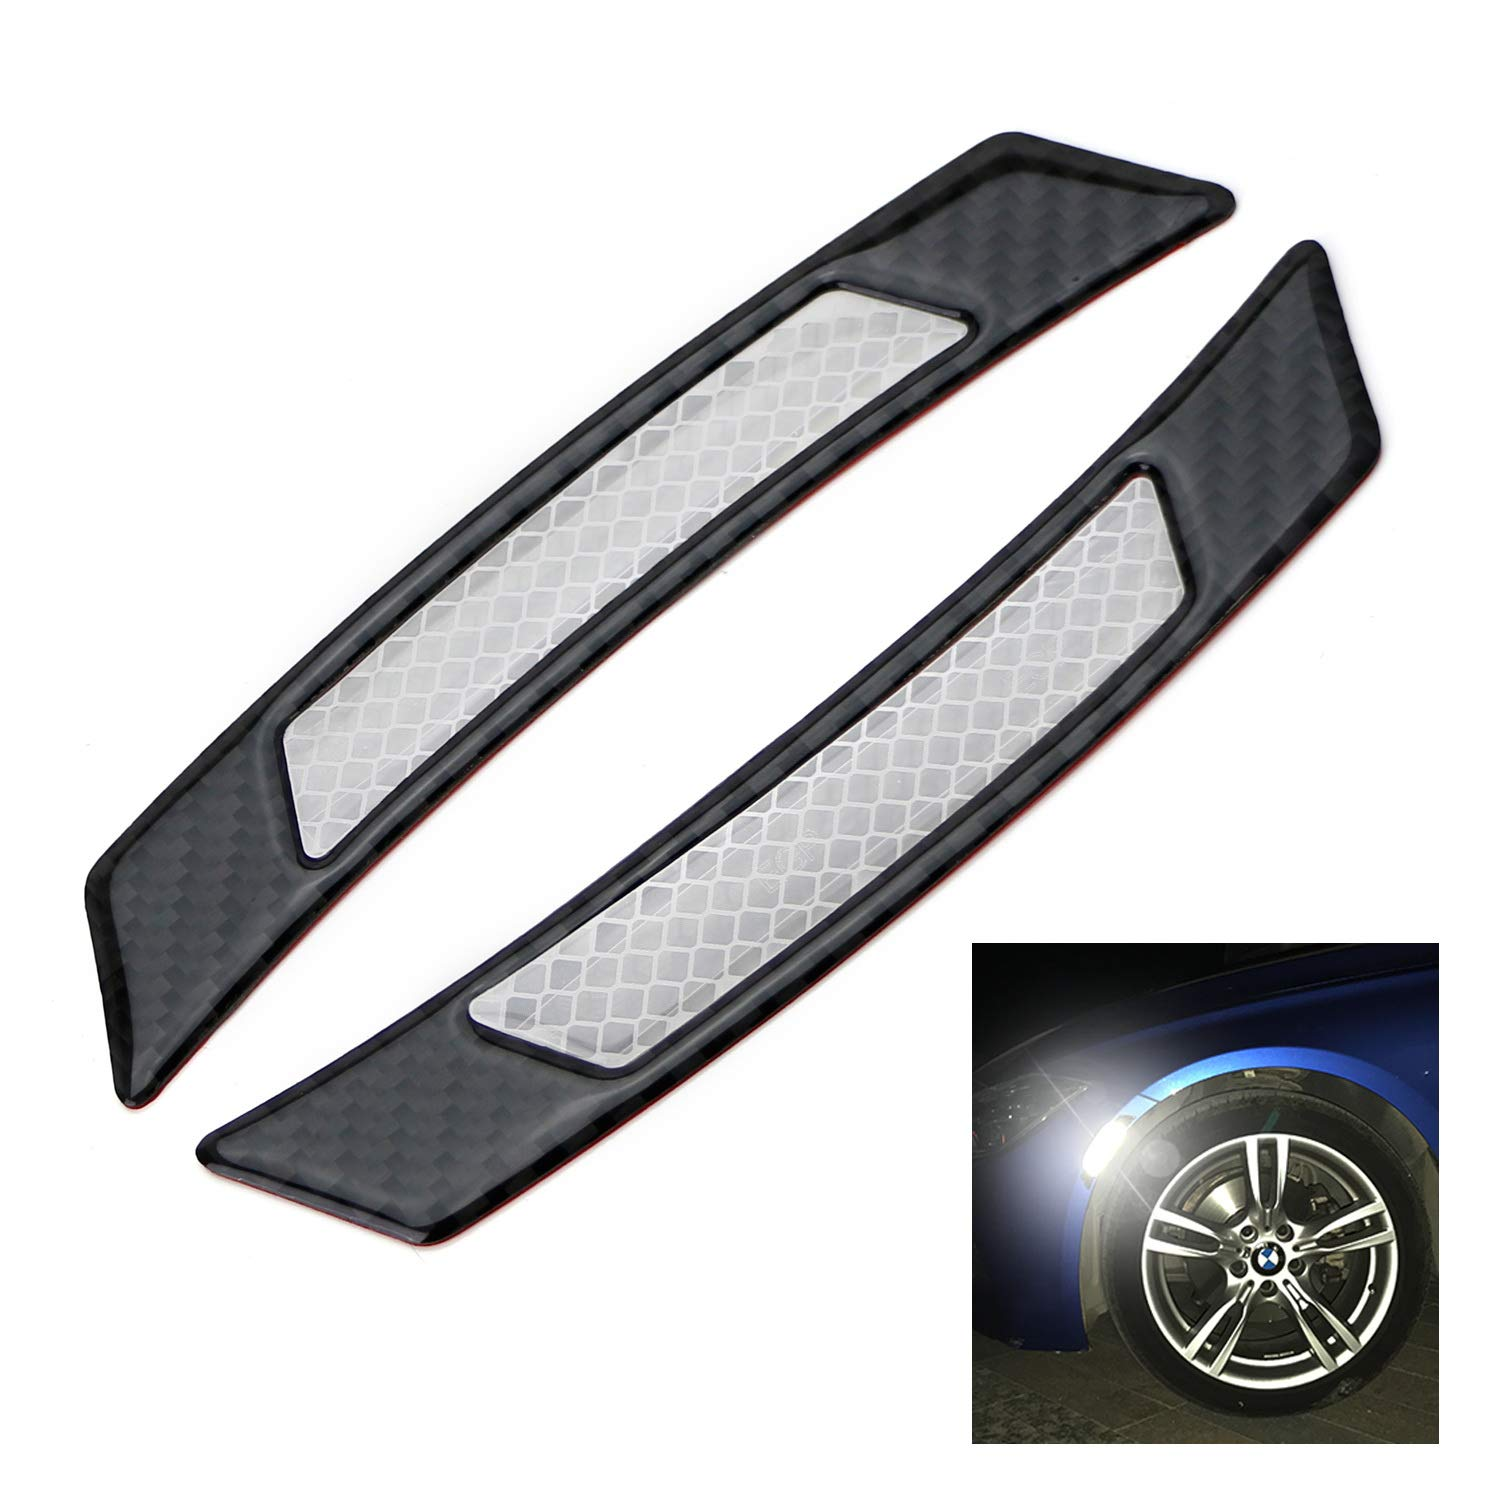 iJDMTOY Pair Universal White Reflective Side Marker Stickers w/Outer Black Carbon Fiber Trim For Car SUV Truck Wheel Well Arch or Side Bumper/Fenders iJDMTOY Auto Accessories Bulb-less Reflective Stick On Sidemarker